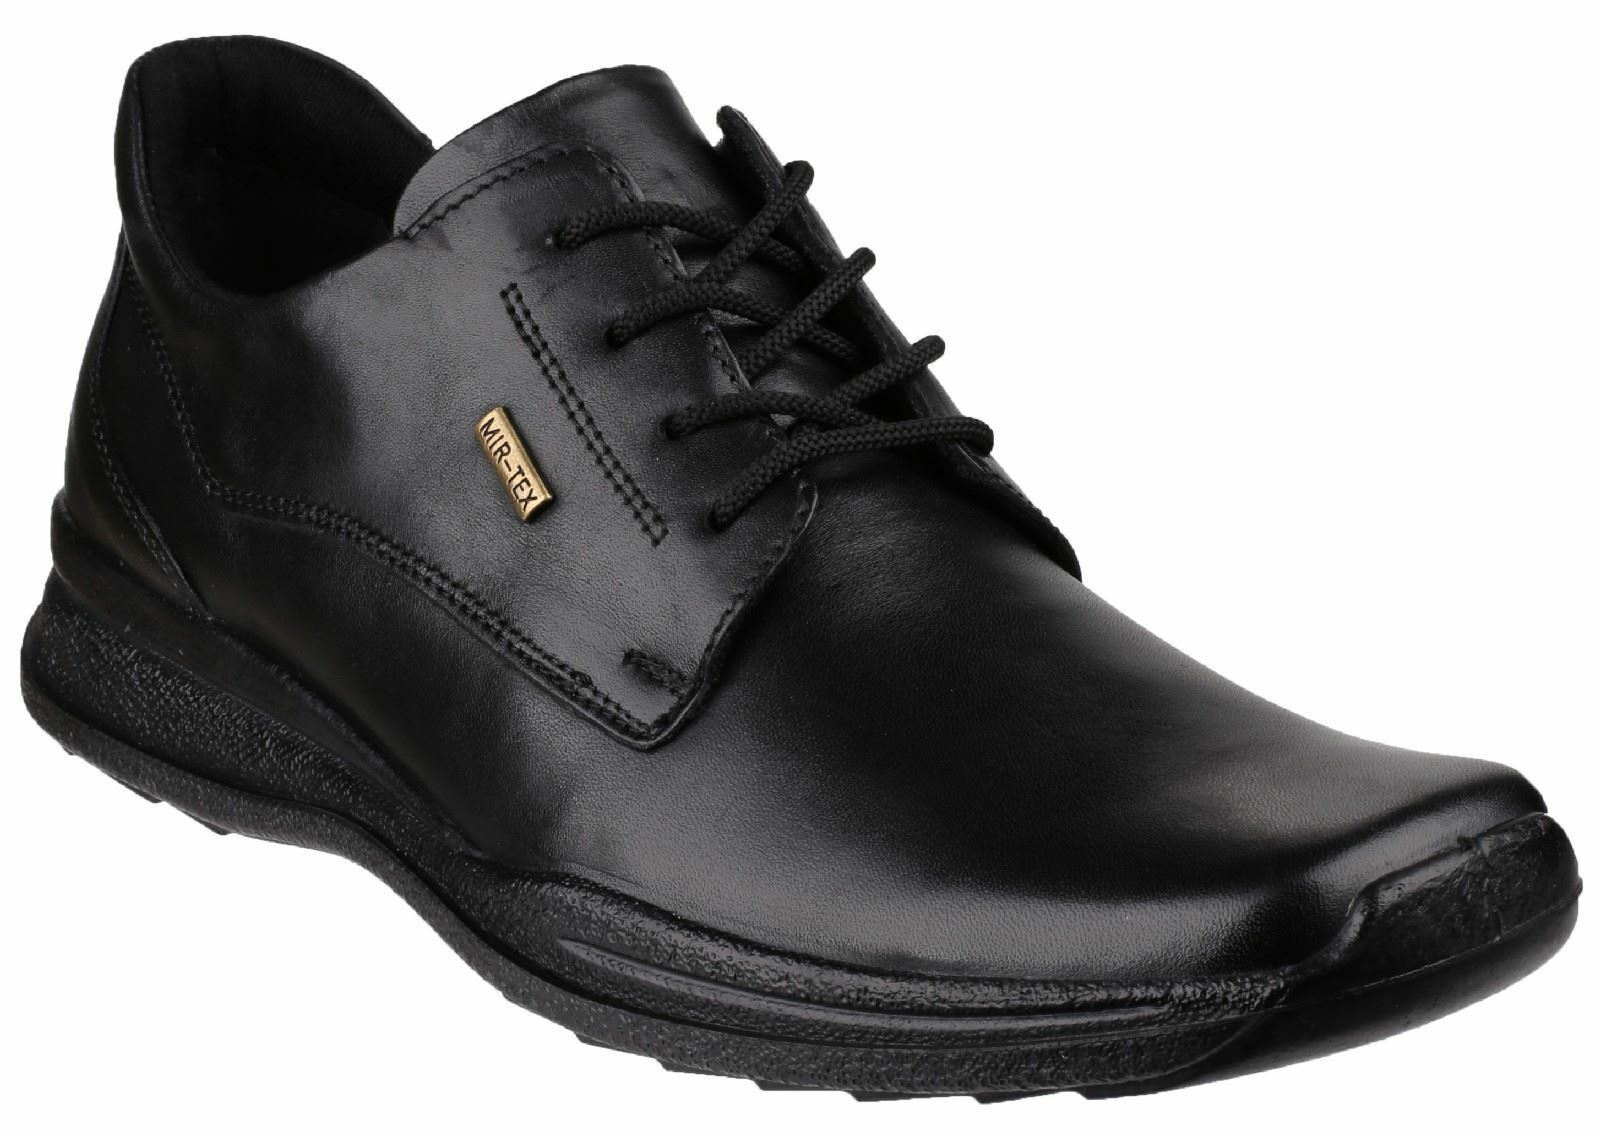 Cotswold Negro Dudley Lace Hombre Leather Zapatos Dudley Negro 1280a1